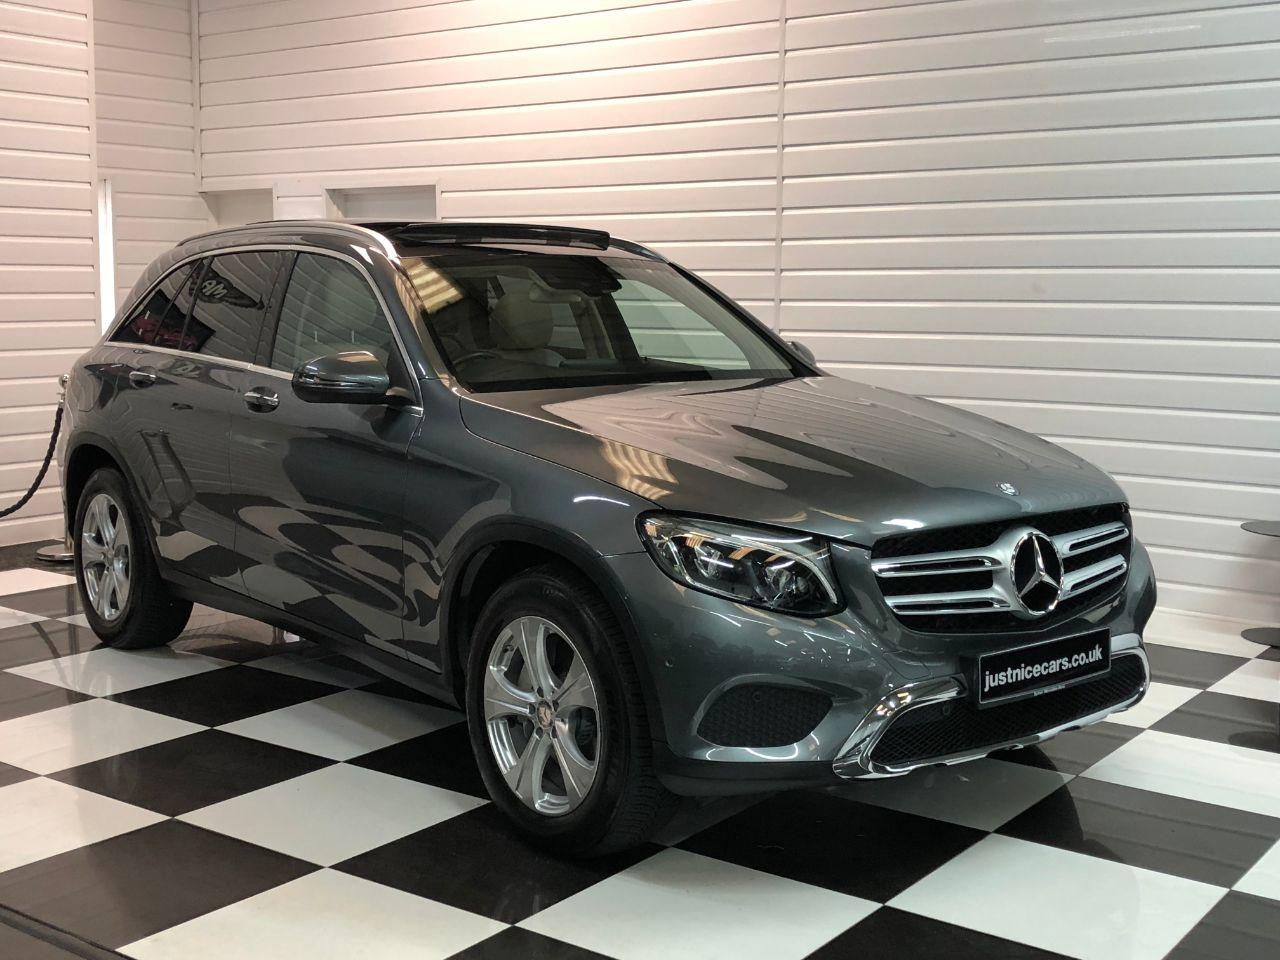 Mercedes-Benz GLC 2.1 GLC 250d 4Matic Sport Premium Plus 5dr 9G-Tronic Estate Diesel Selenite Grey Metallic